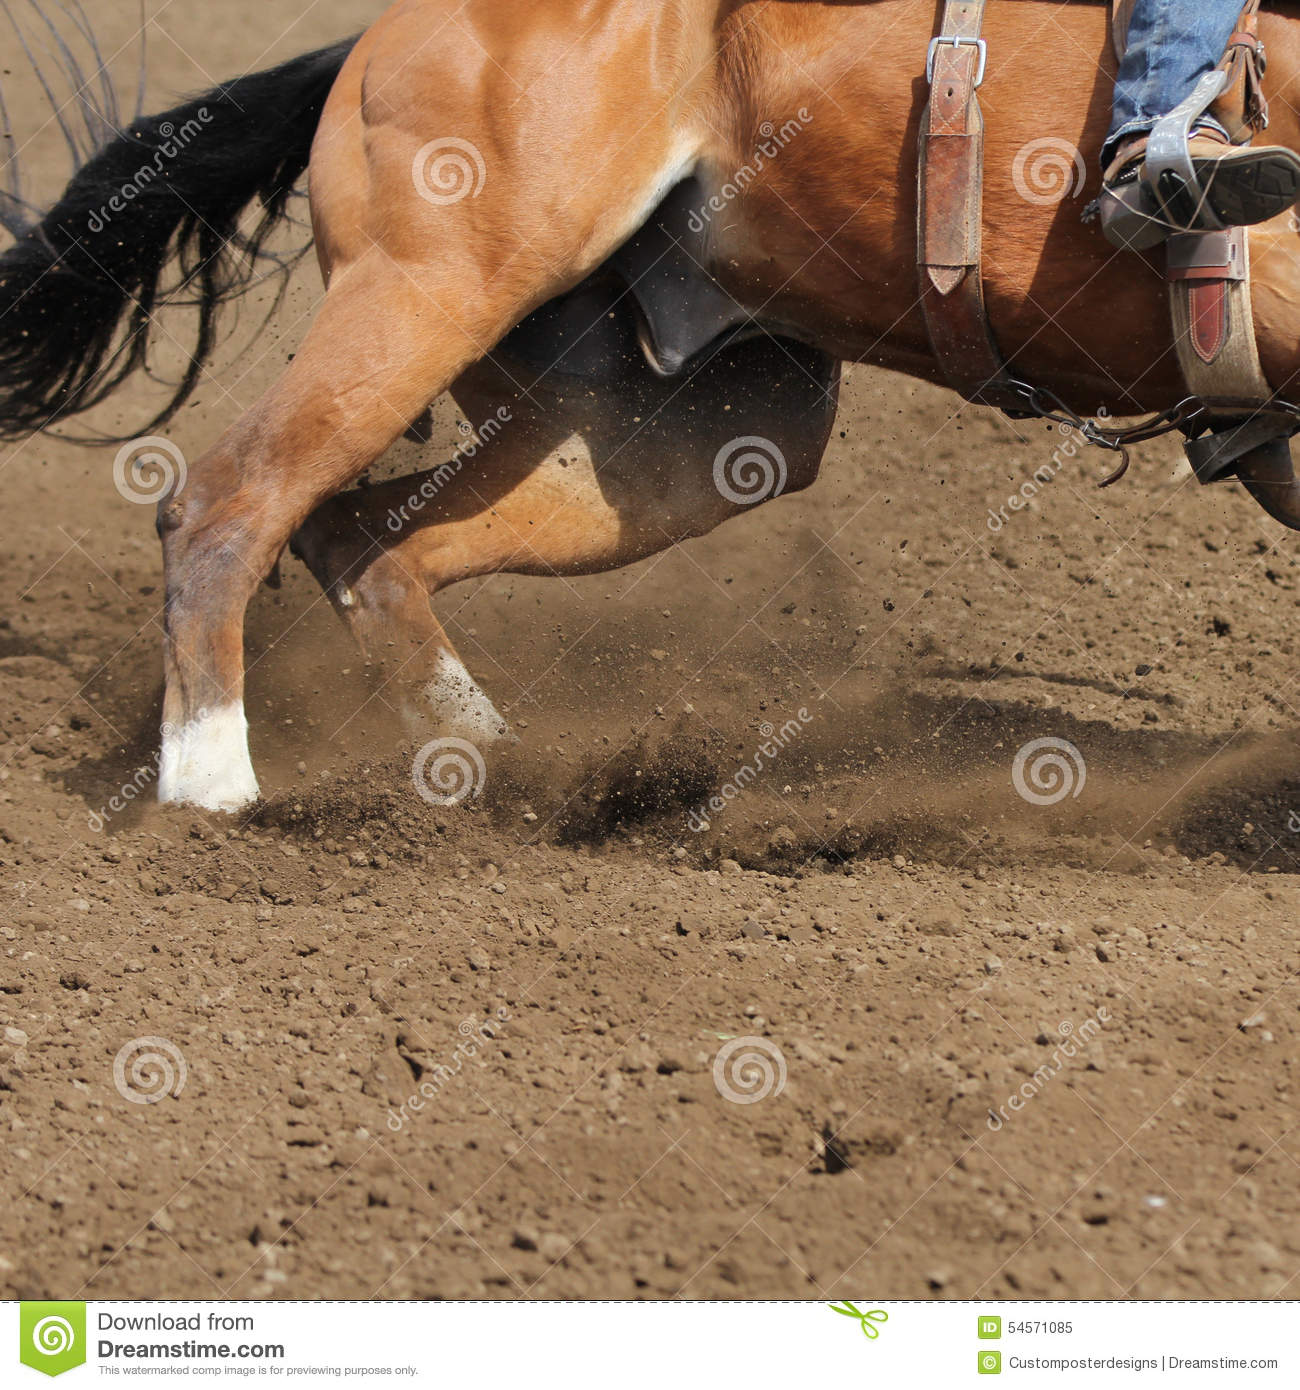 A close up view of a fast running horse and flying dirt.